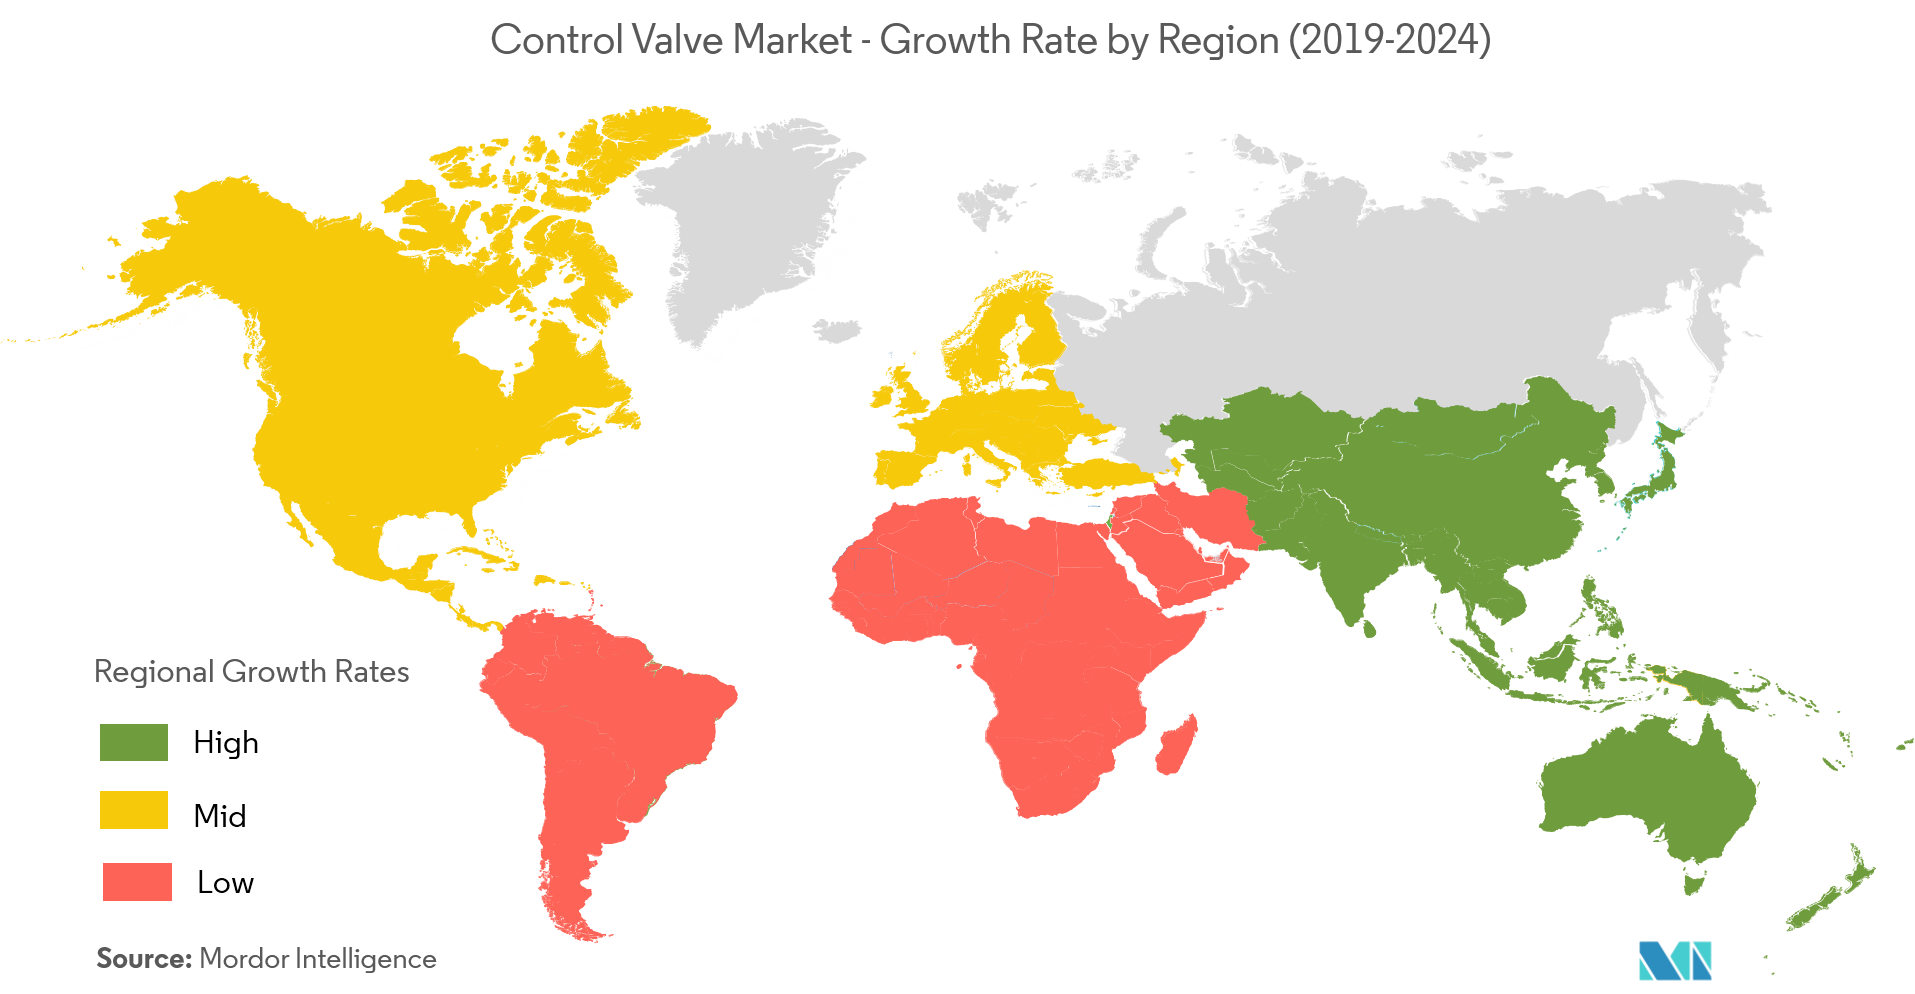 Control Valve Market Growth Rate By Region